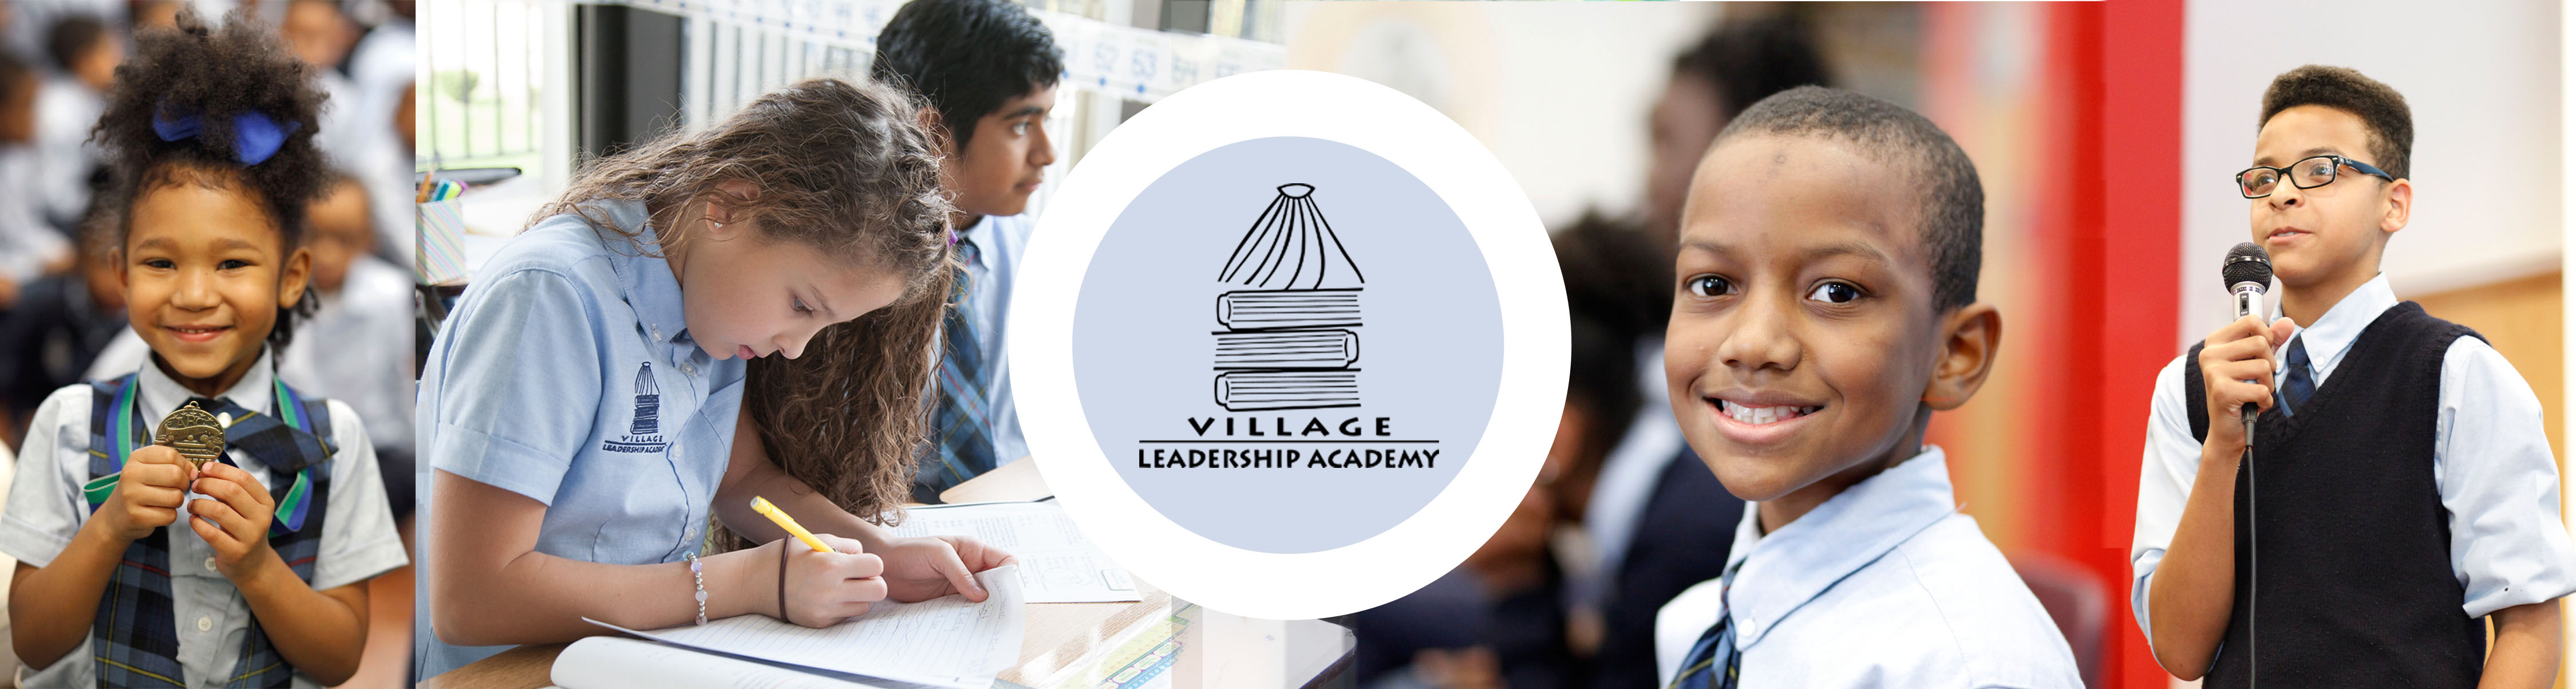 Village Leadership Academy